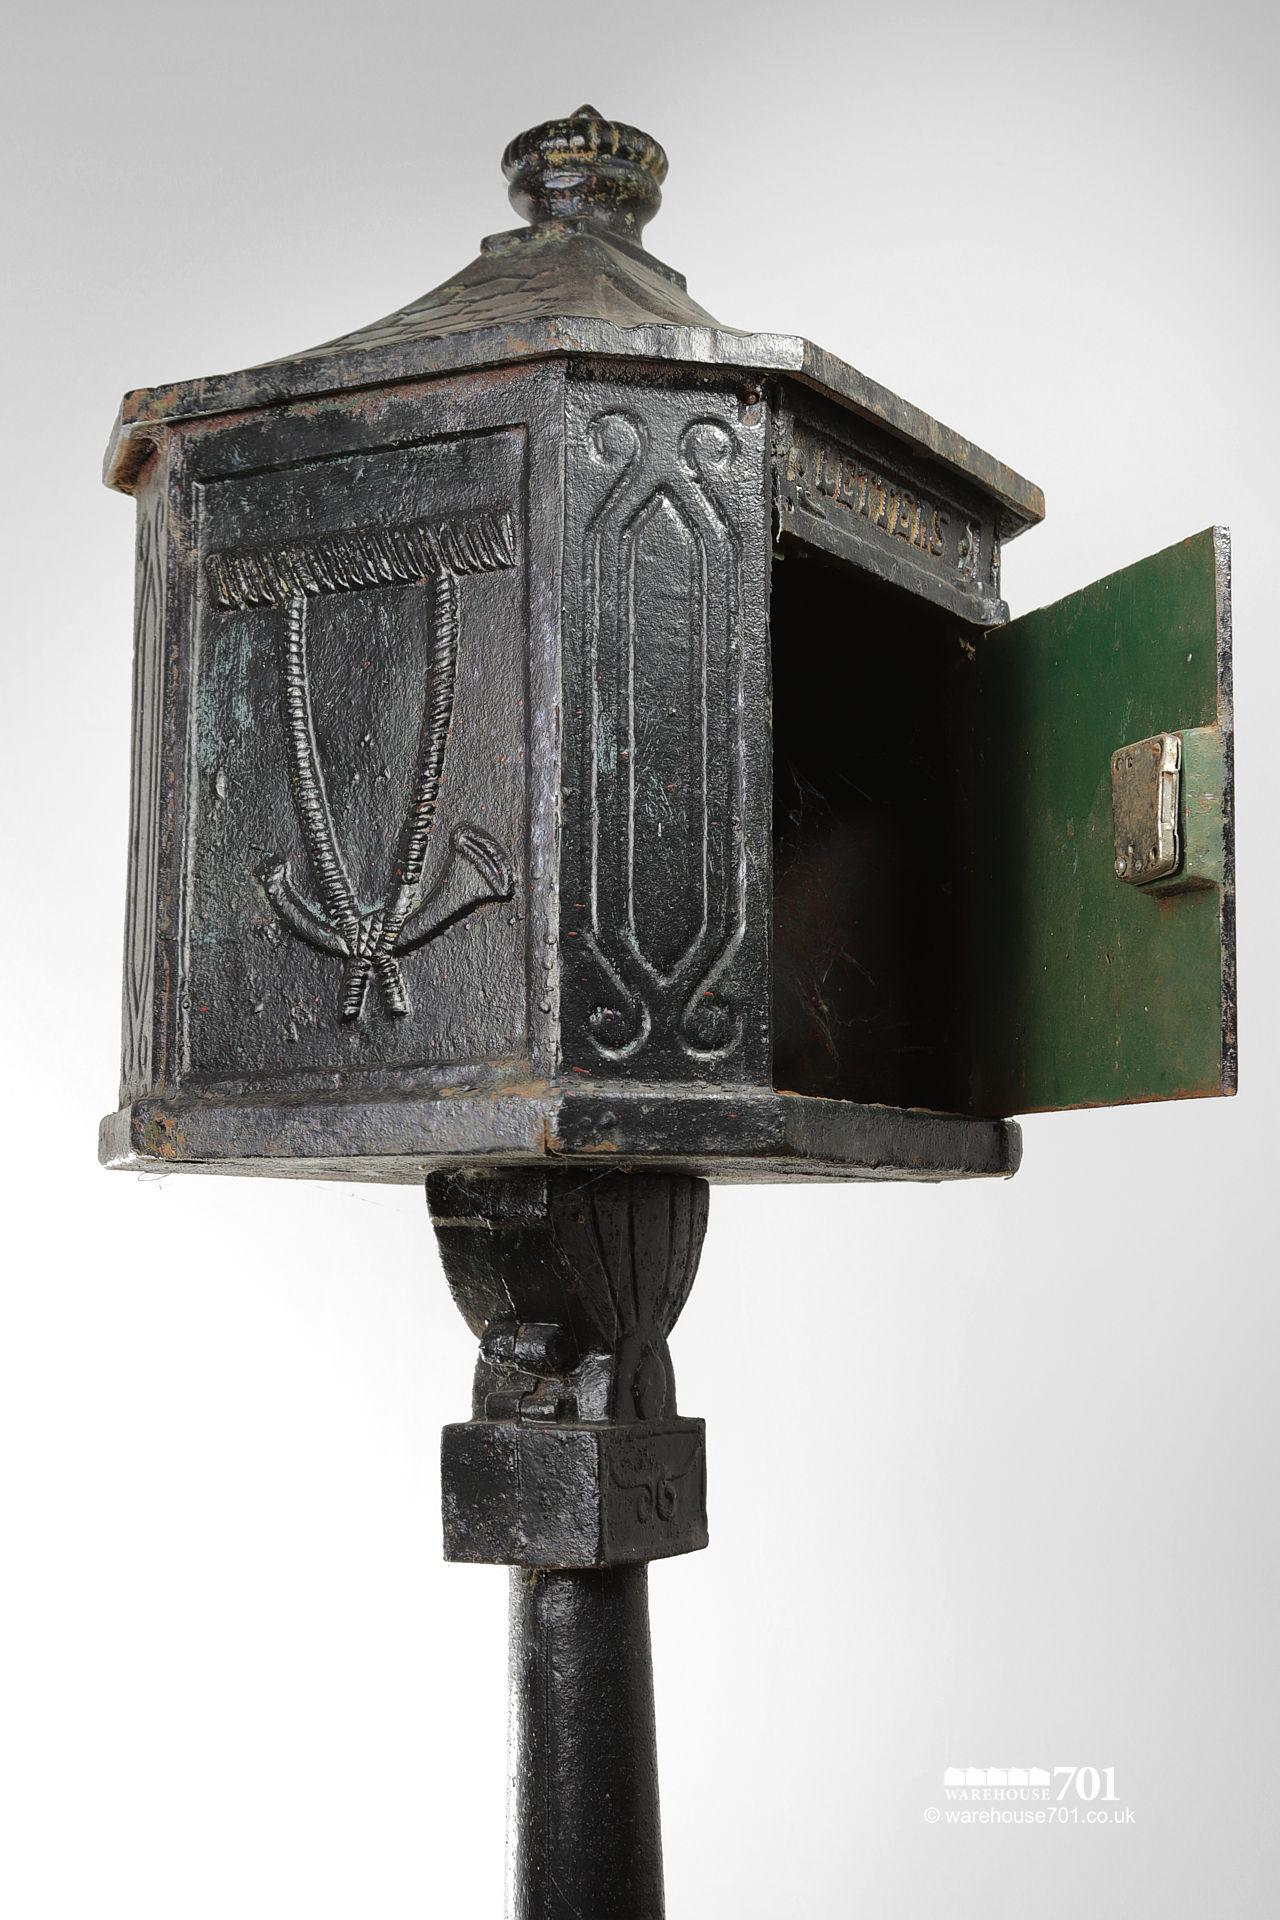 Salvaged Cast Iron Letterbox or Post Box on a Plinth #4